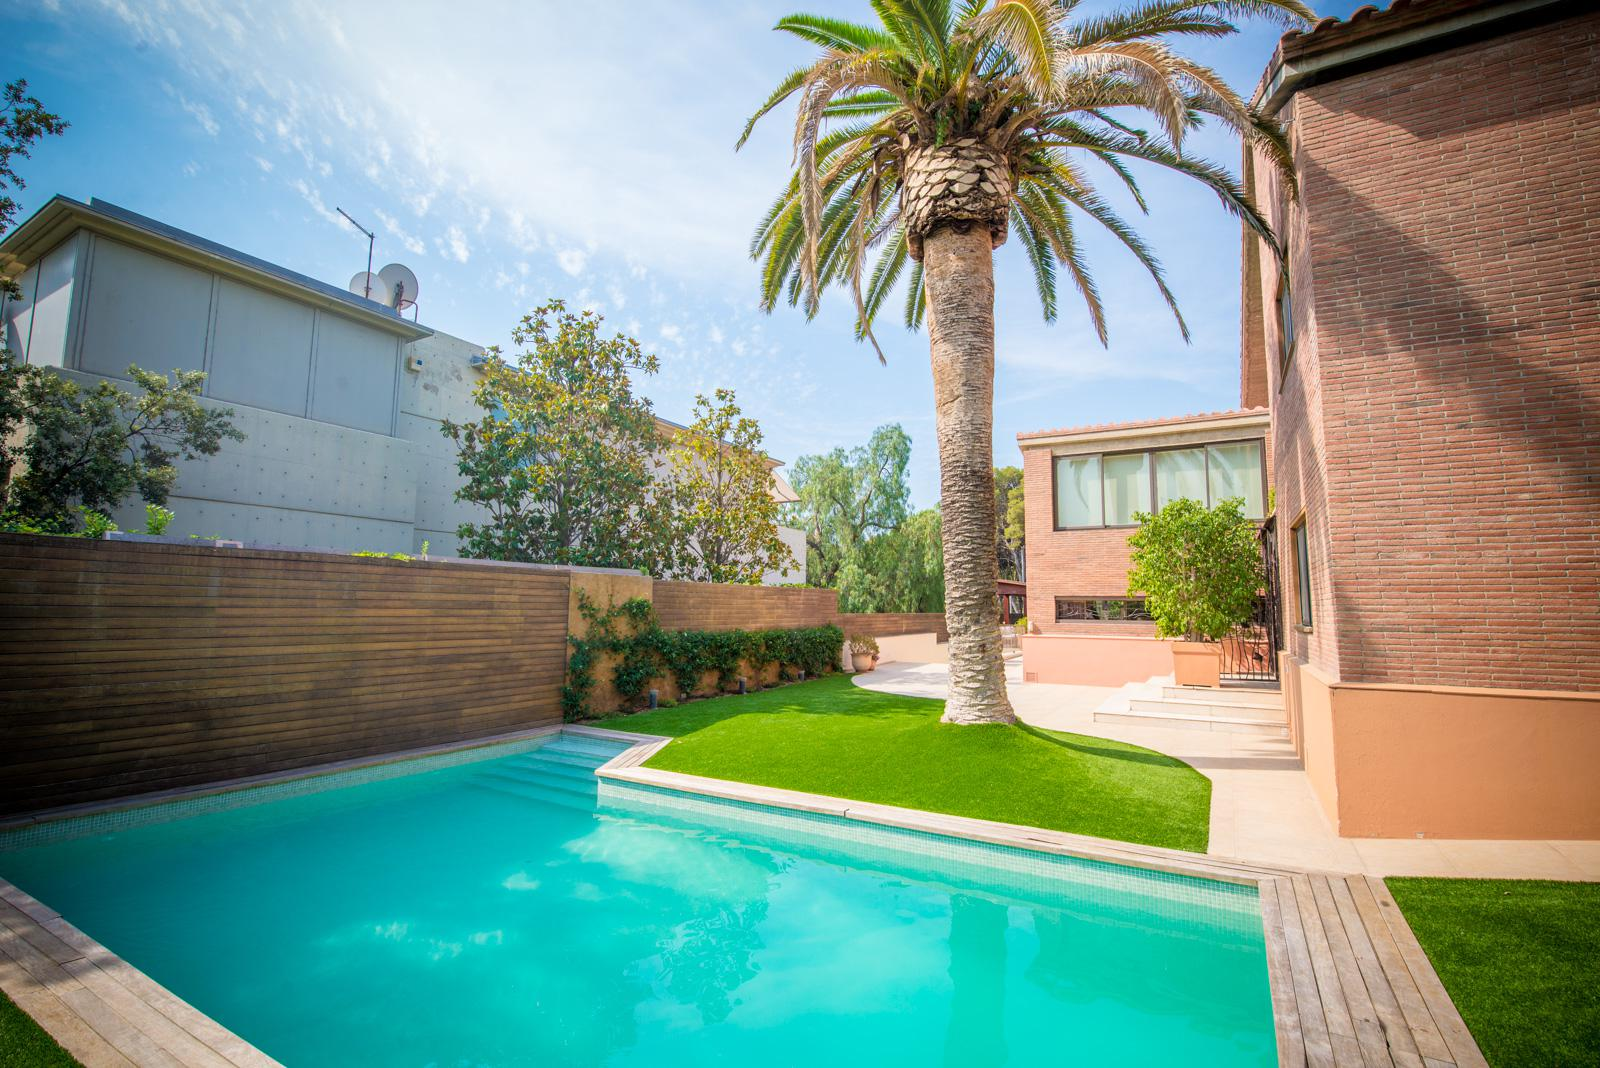 121070 House Isolated for sale in Les Corts, Pedralbes 12